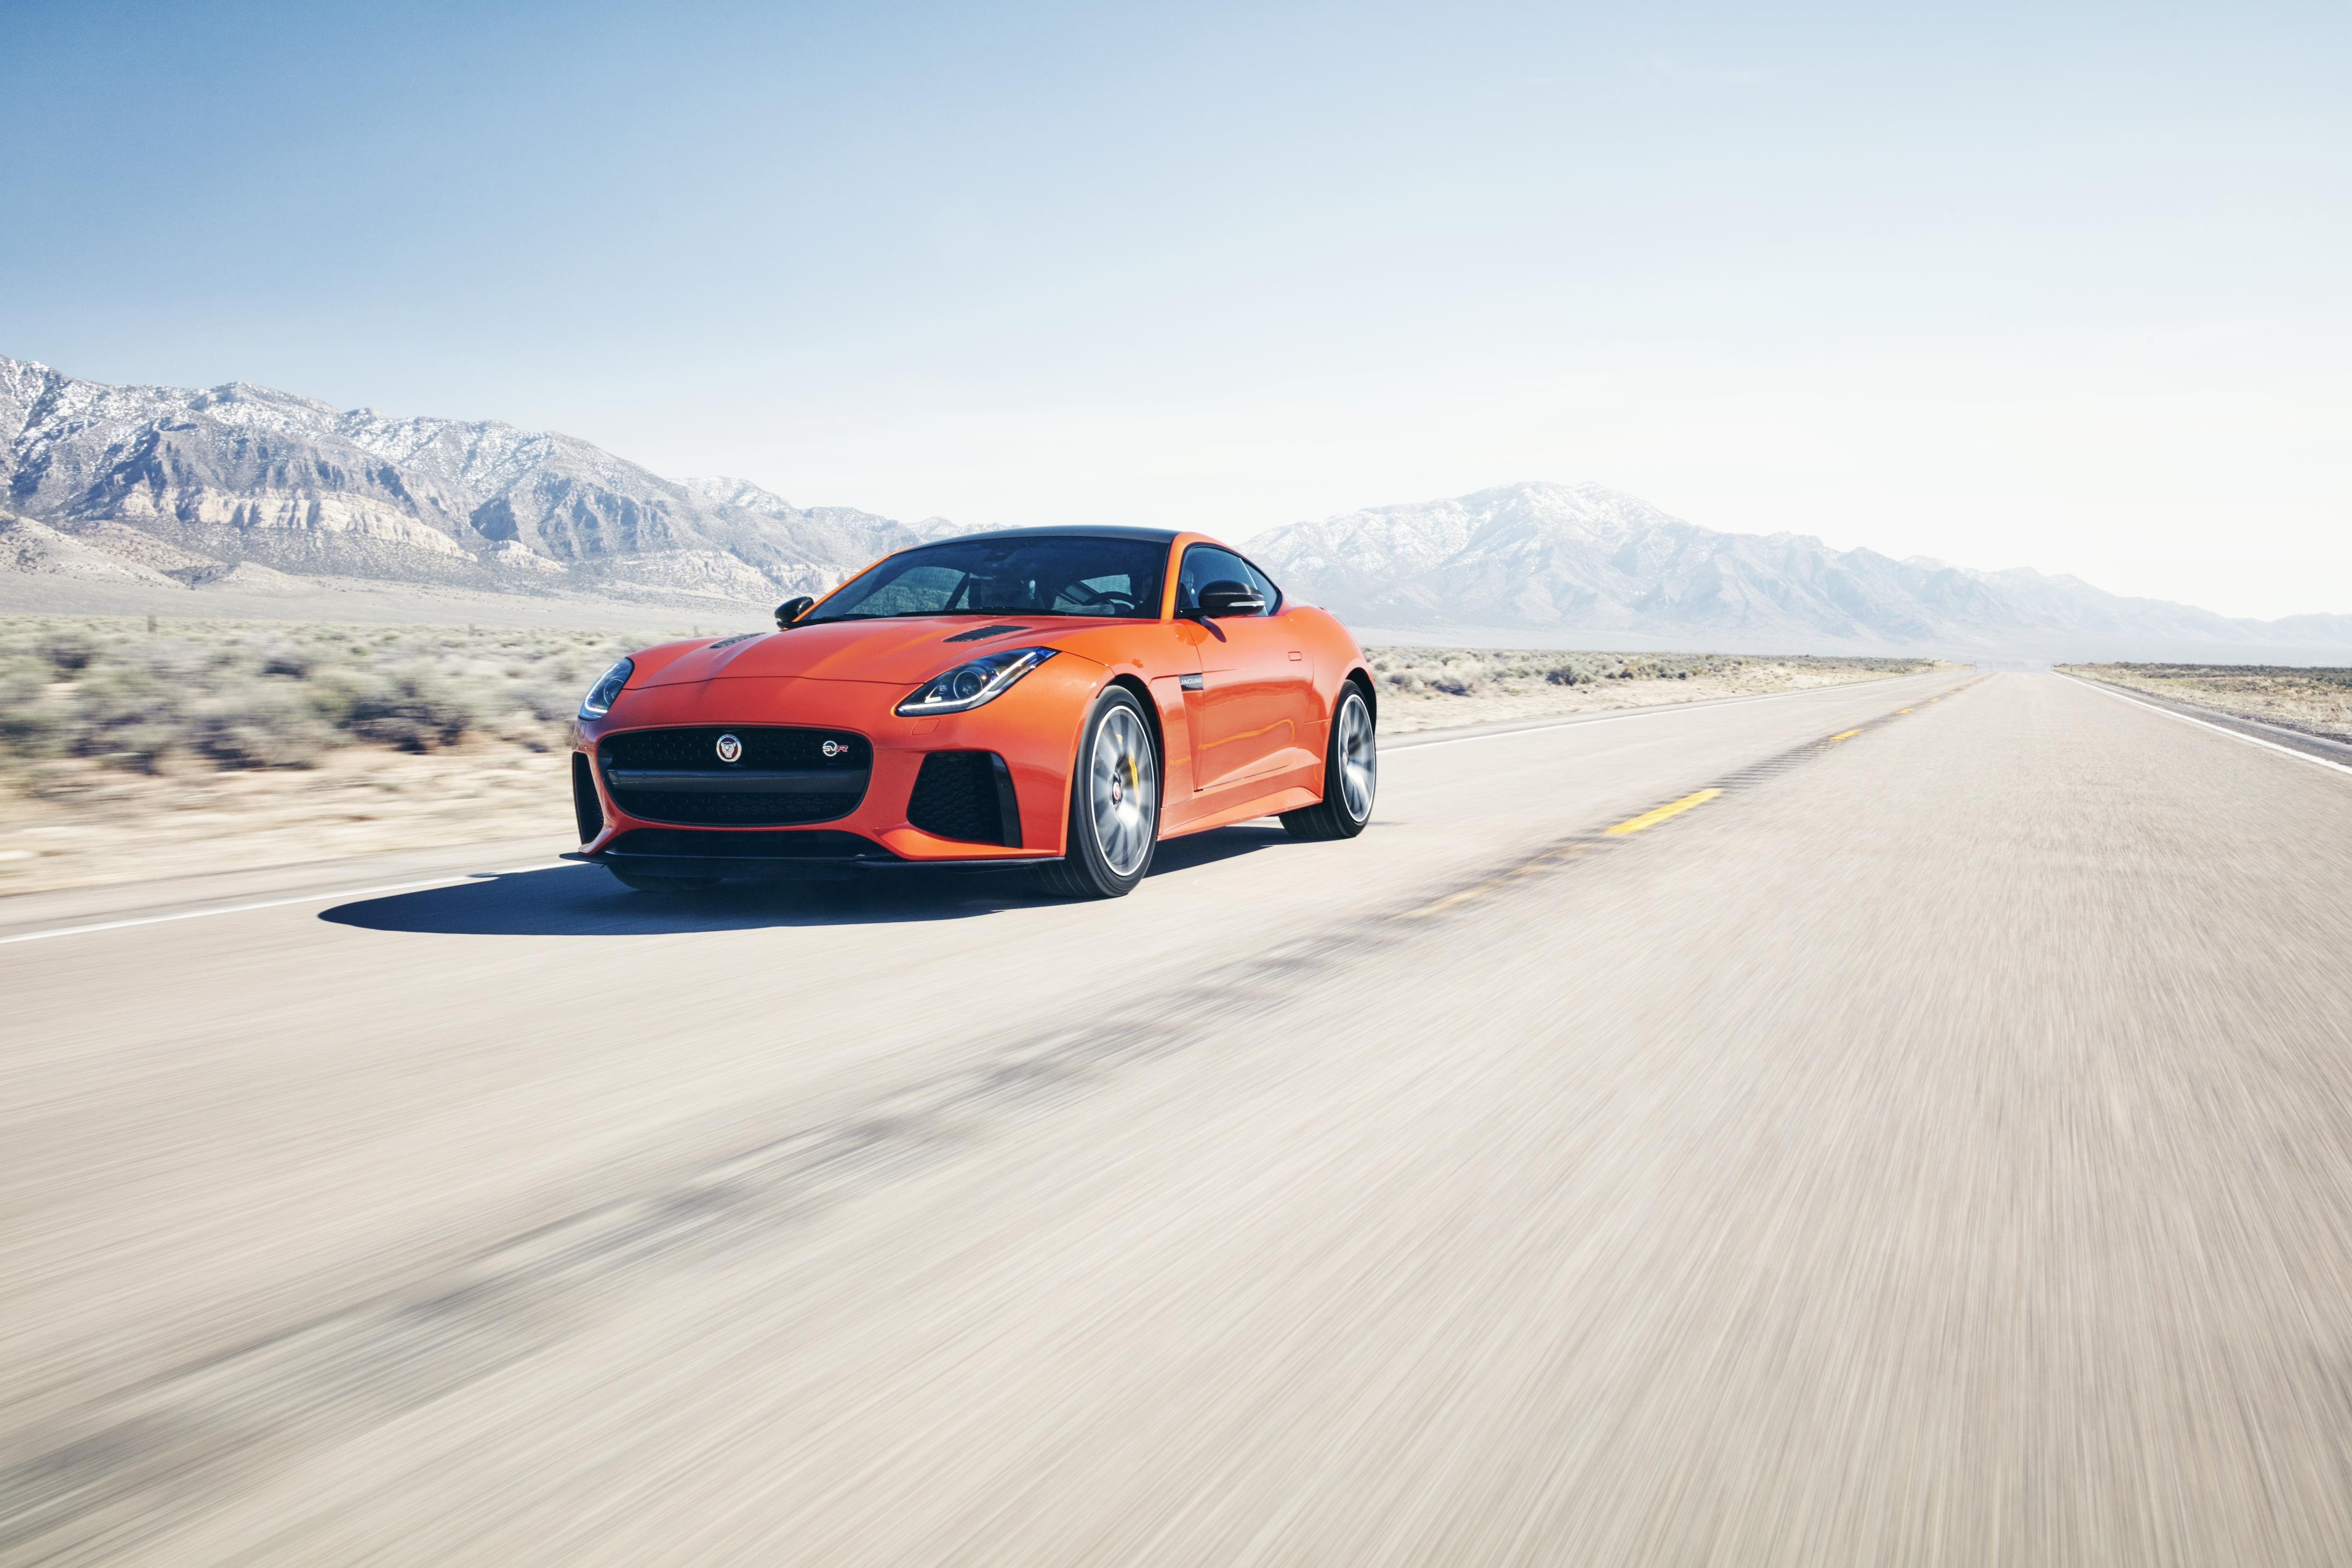 2016 Jaguar F-Type SVR Michelle Rodriguez 200 MPH Attempt